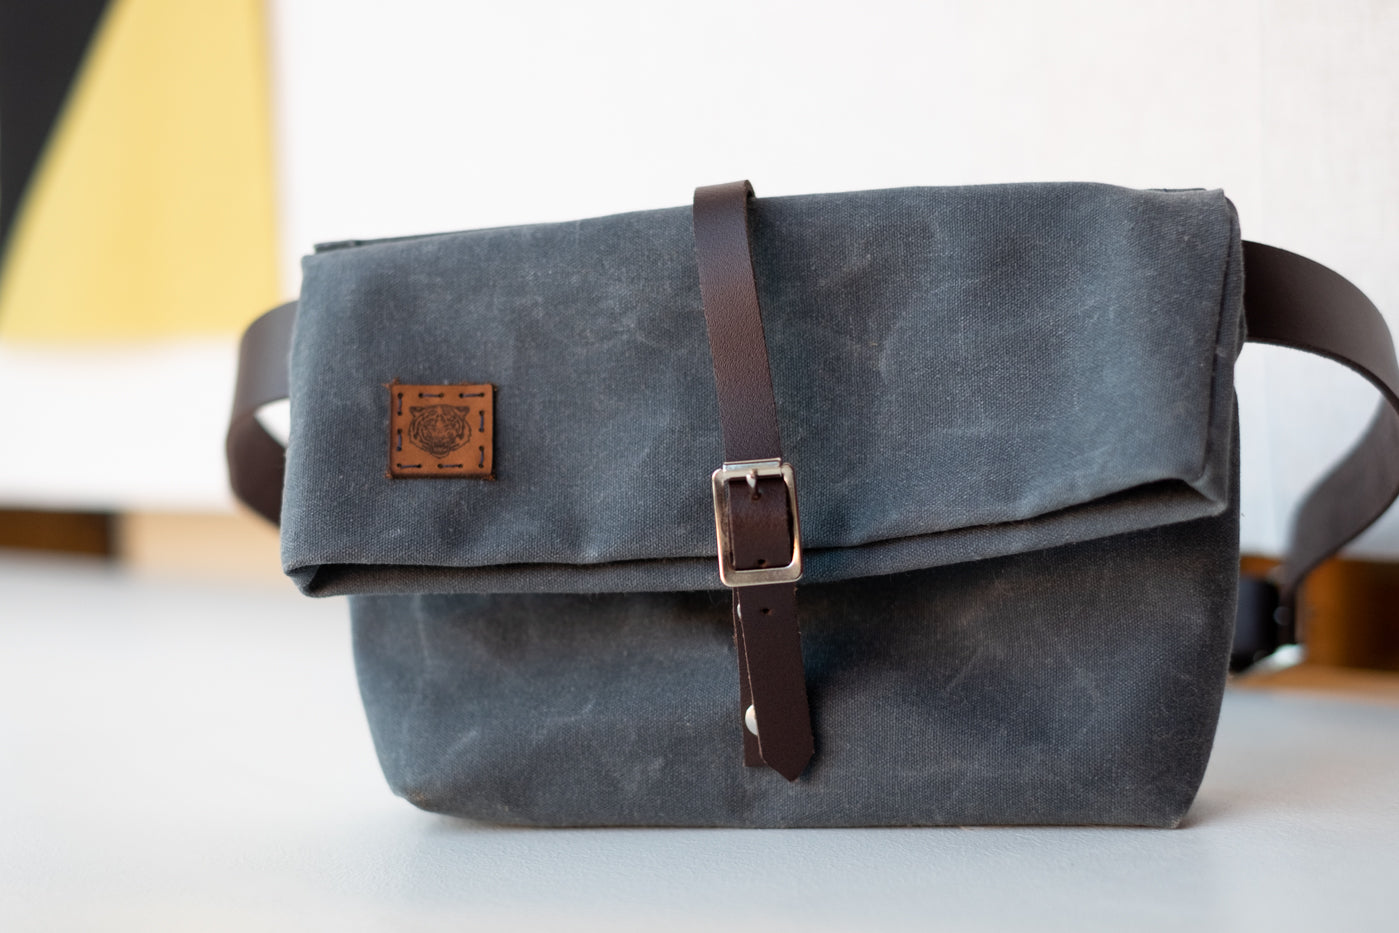 Slate waxed canvas bag with dark leather sitting upright agains a white background.